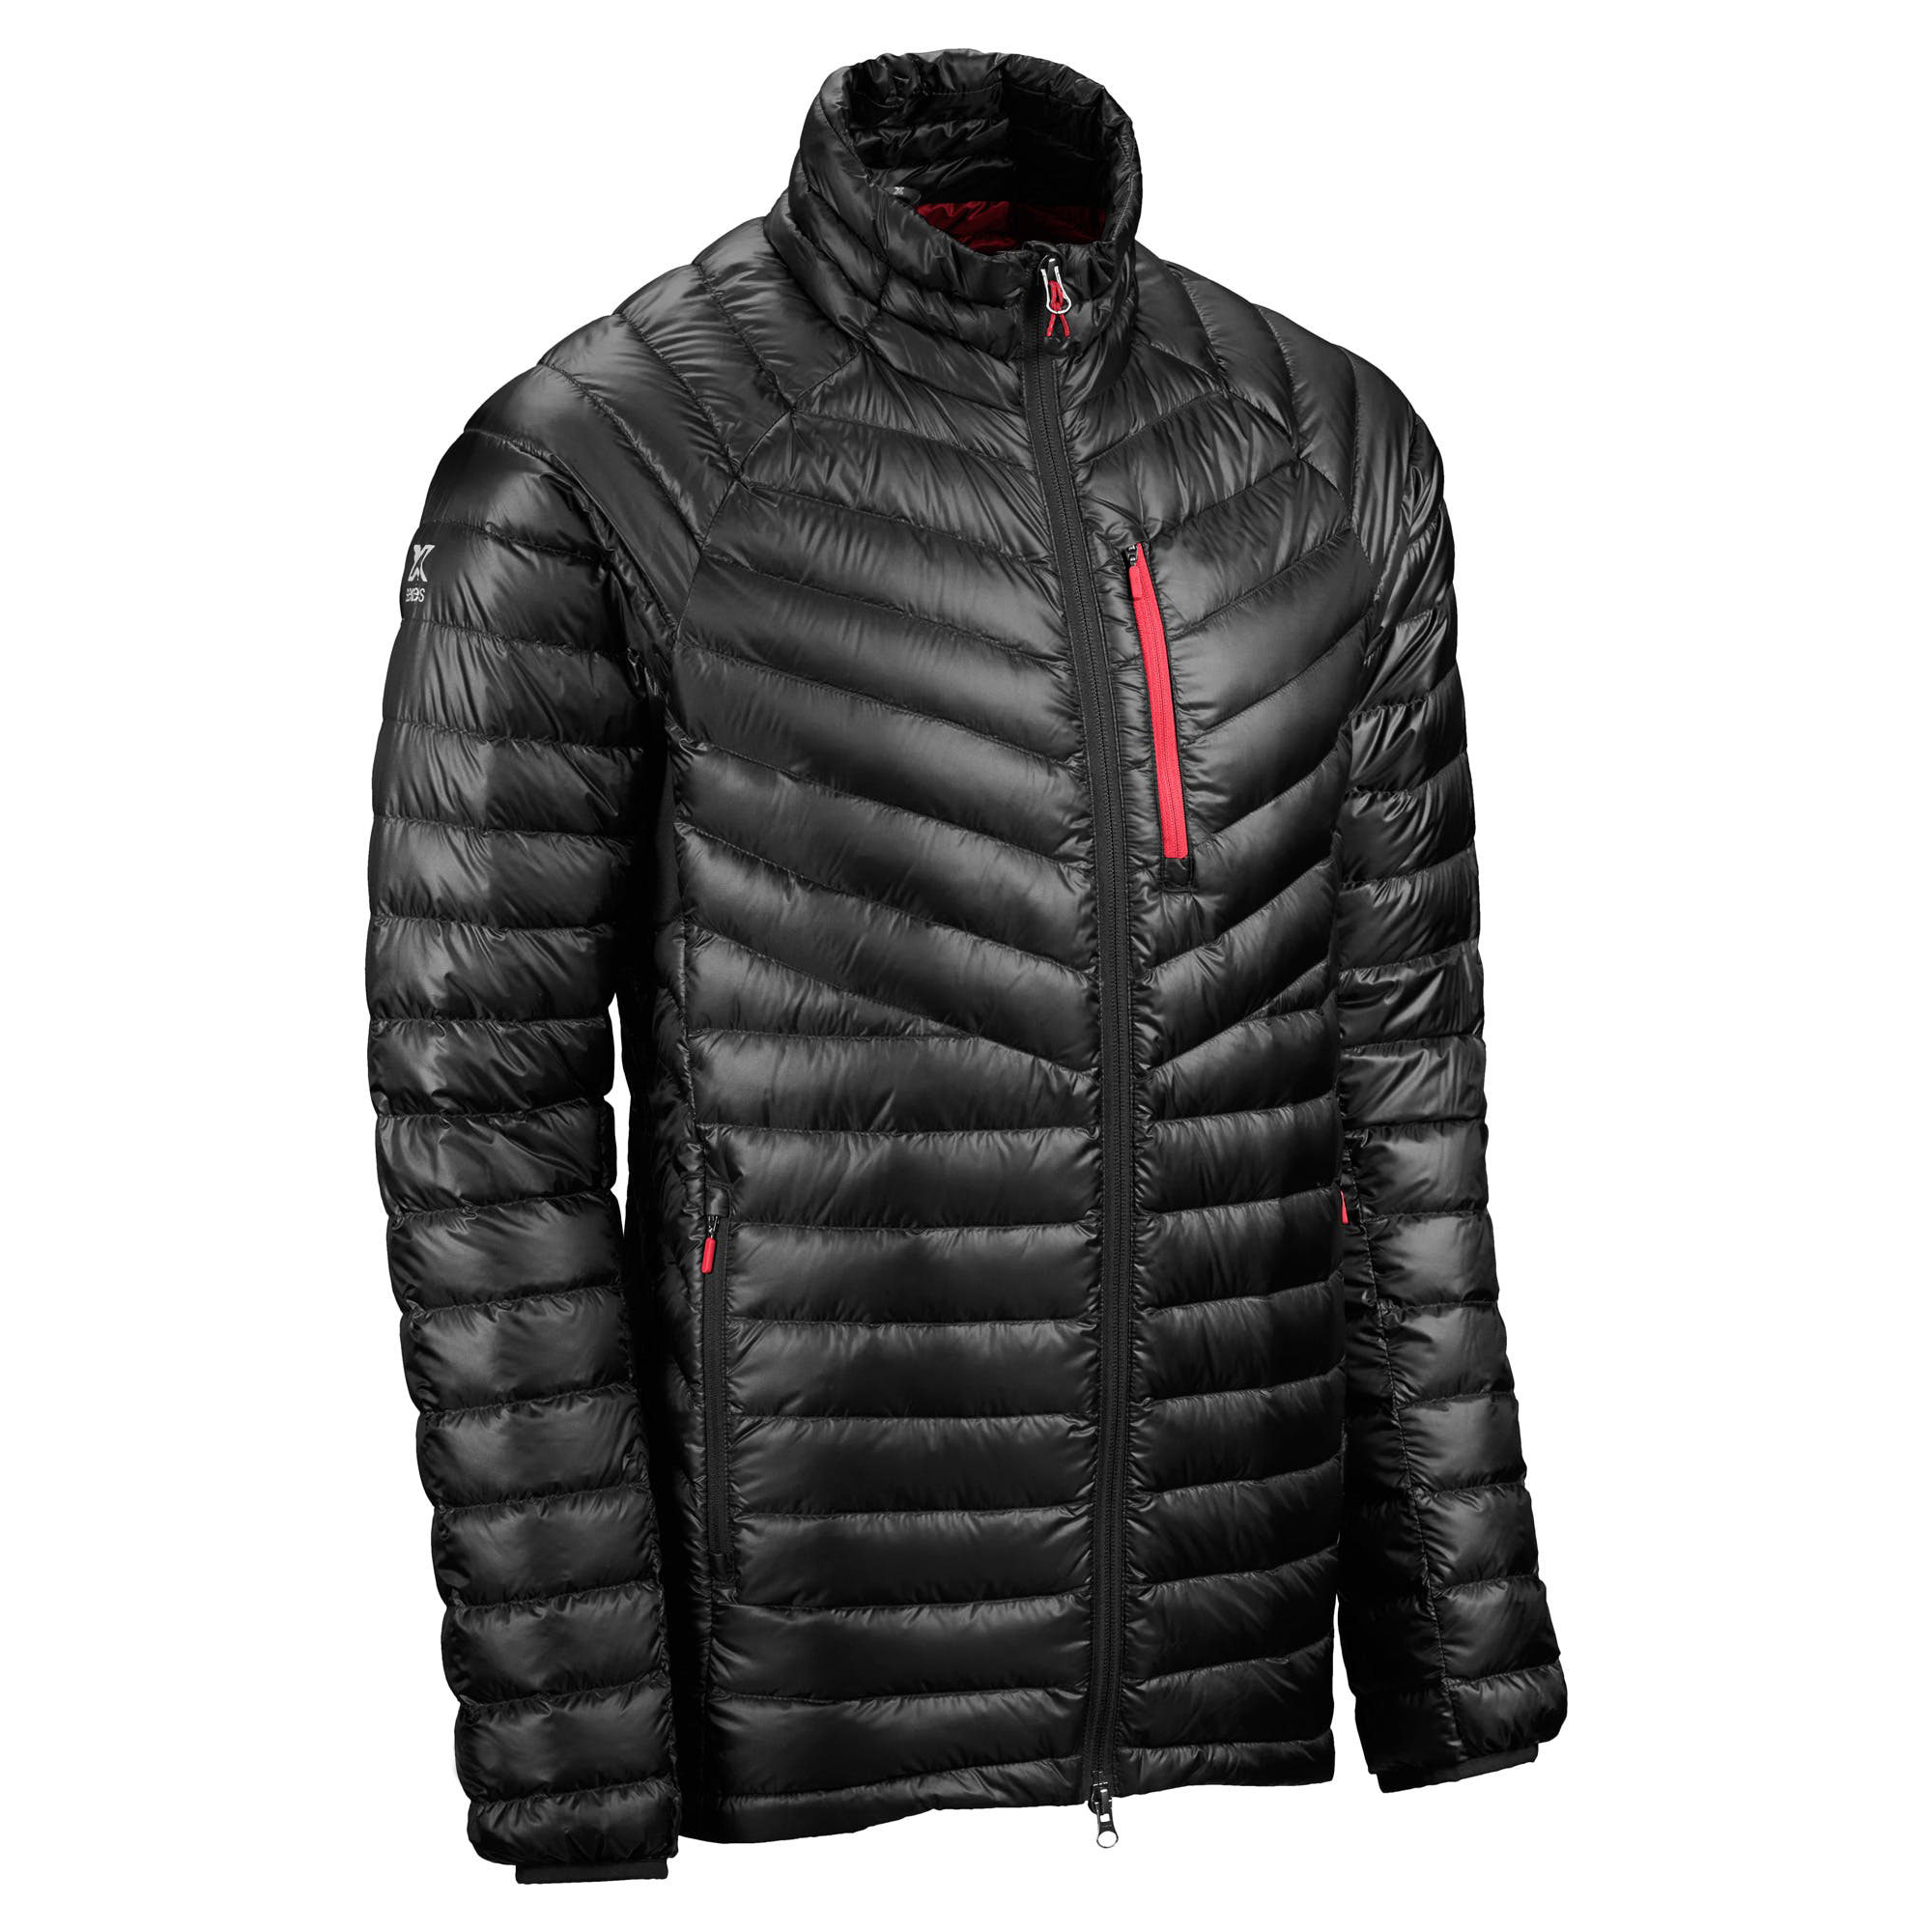 XT Ultralight Men's Down Jacket v2